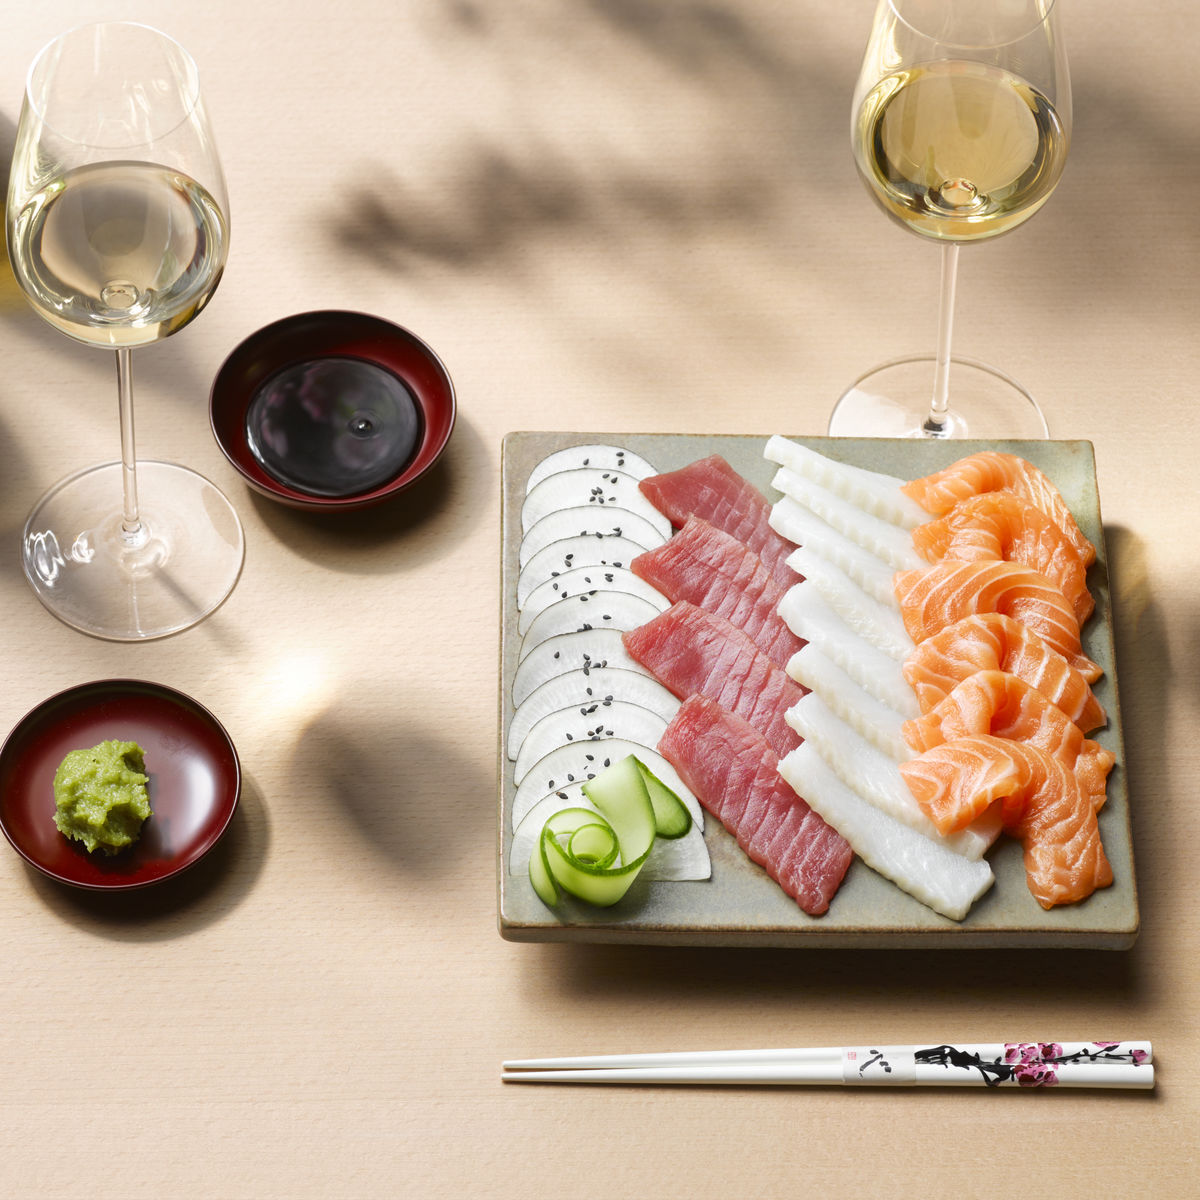 The picture shows sashimi and three glasses of white wine.